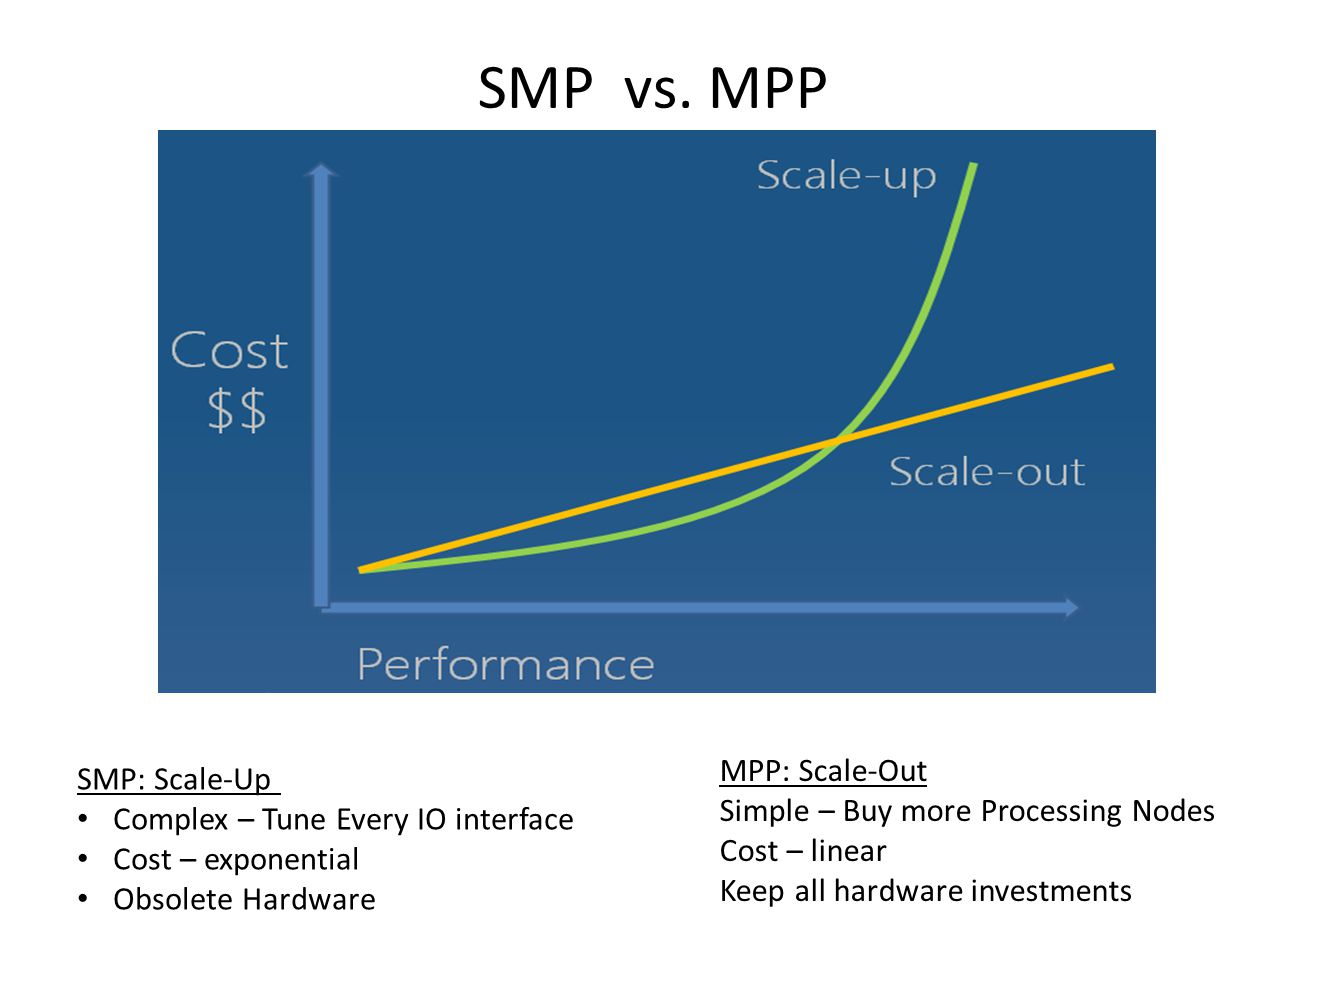 SMP: Scale-Up Complex – Tune Every IO interface Cost – exponential Obsolete Hardware MPP: Scale-Out Simple – Buy more Processing Nodes Cost – linear K